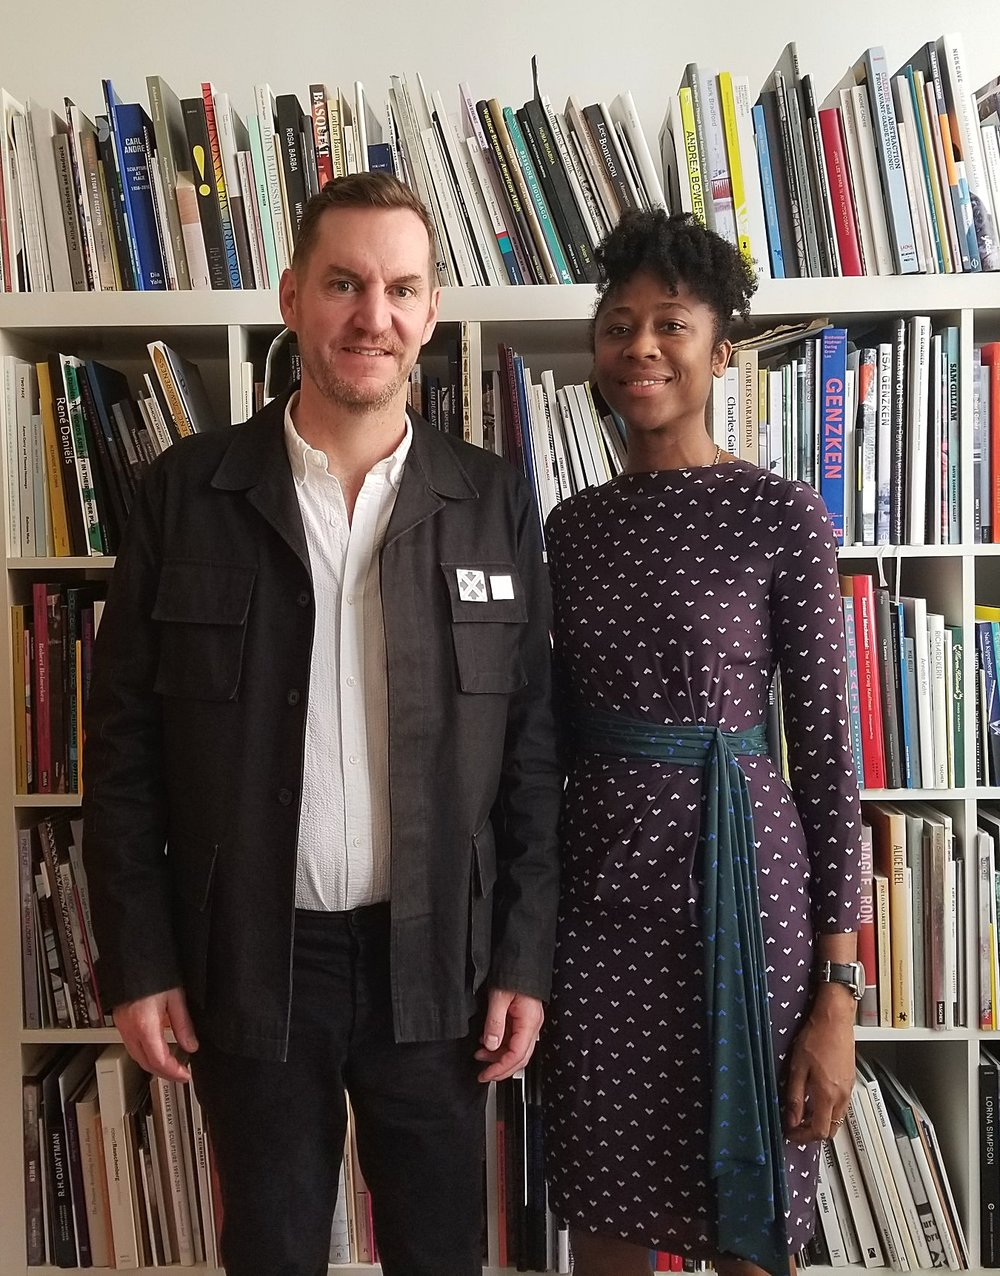 MCA chief curator Michael Darling and MCA curator Naomi Beckwith